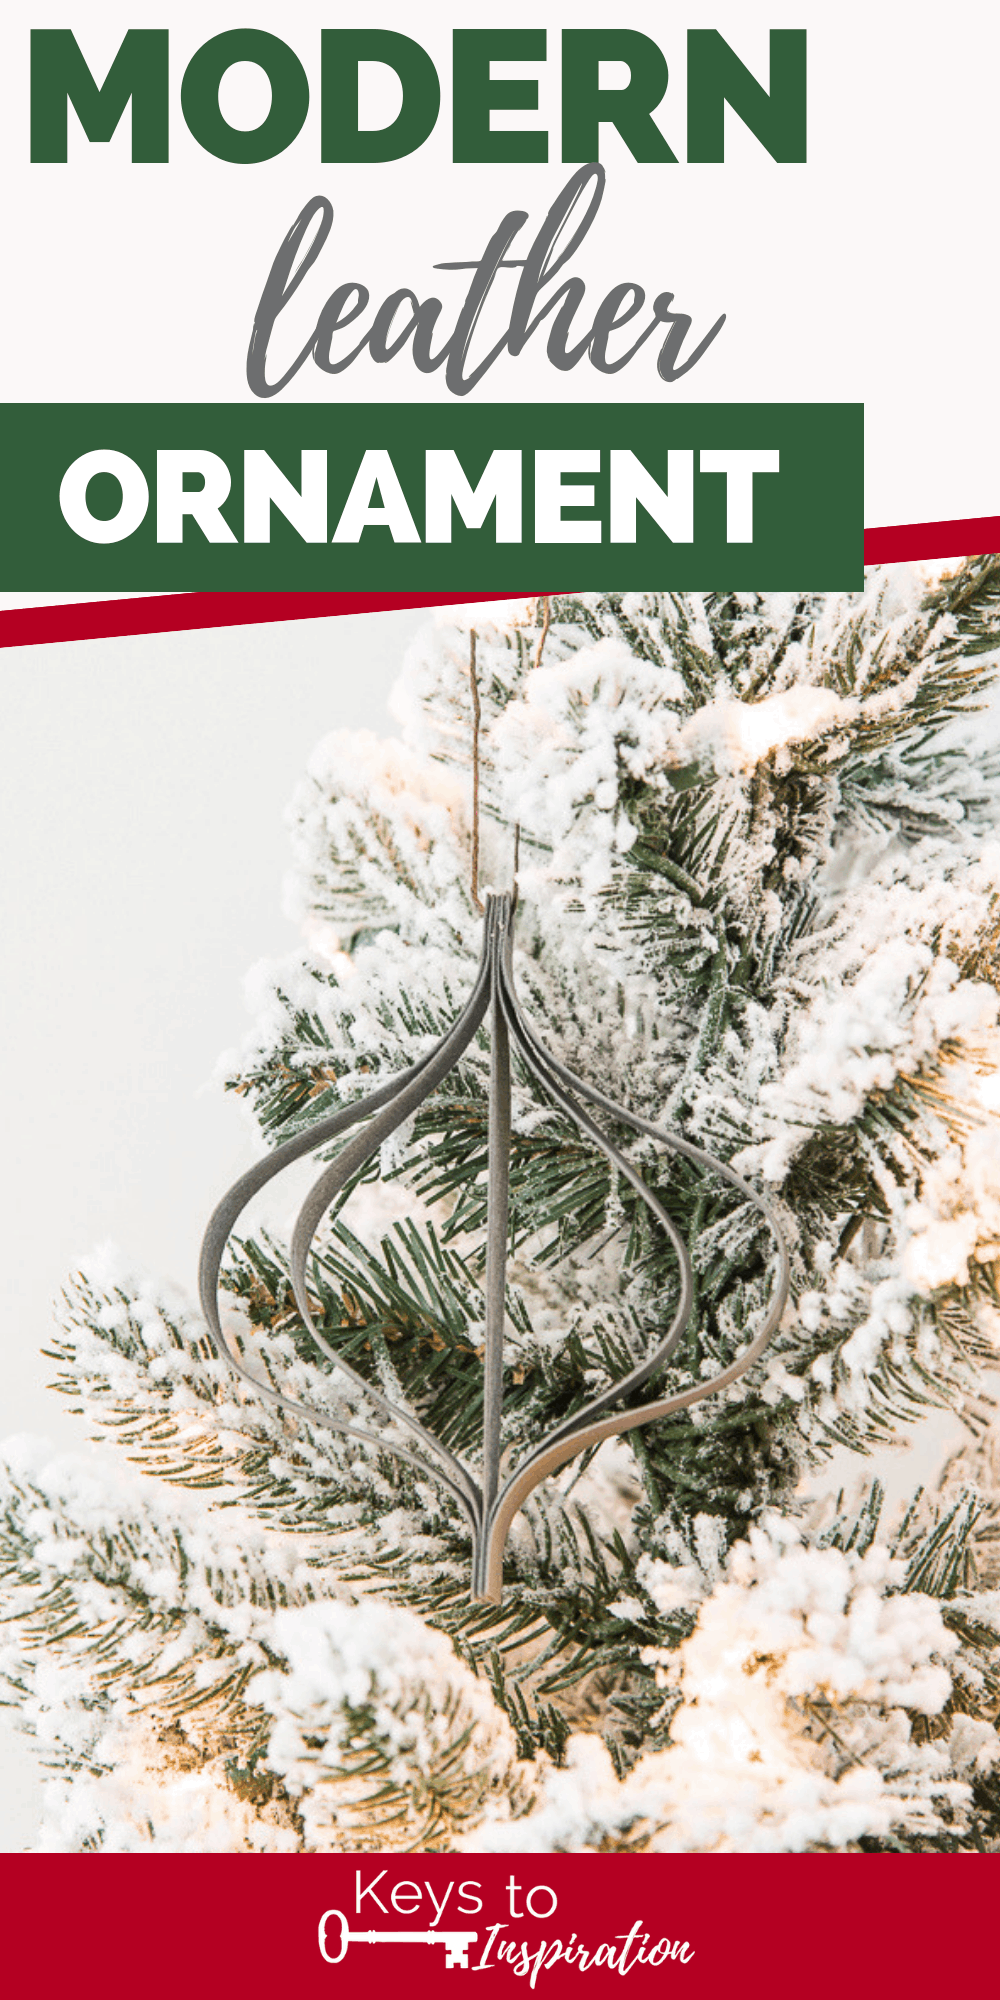 gray modern faux leather Christmas ornament on flocked tree